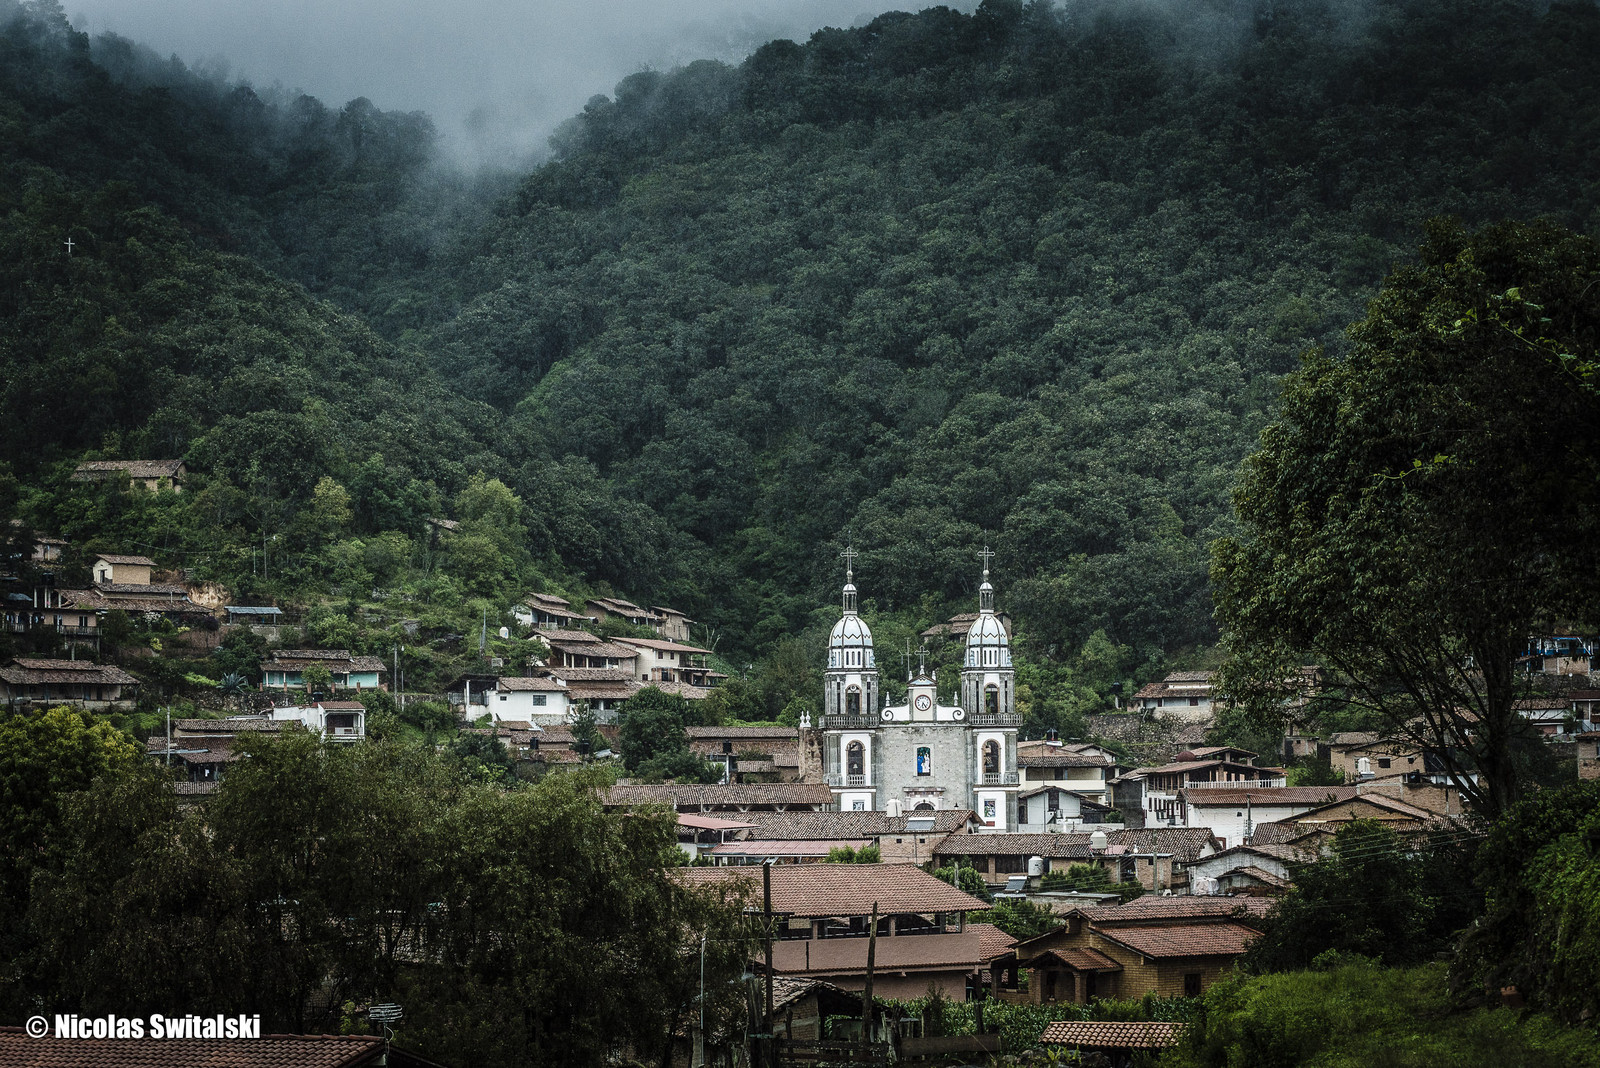 The town of Navidad is part of the Mascota municipality, Navidad dates back to the mid-1600's, more precisely 1644 when they started mining the area. Most of the trails date to this period.